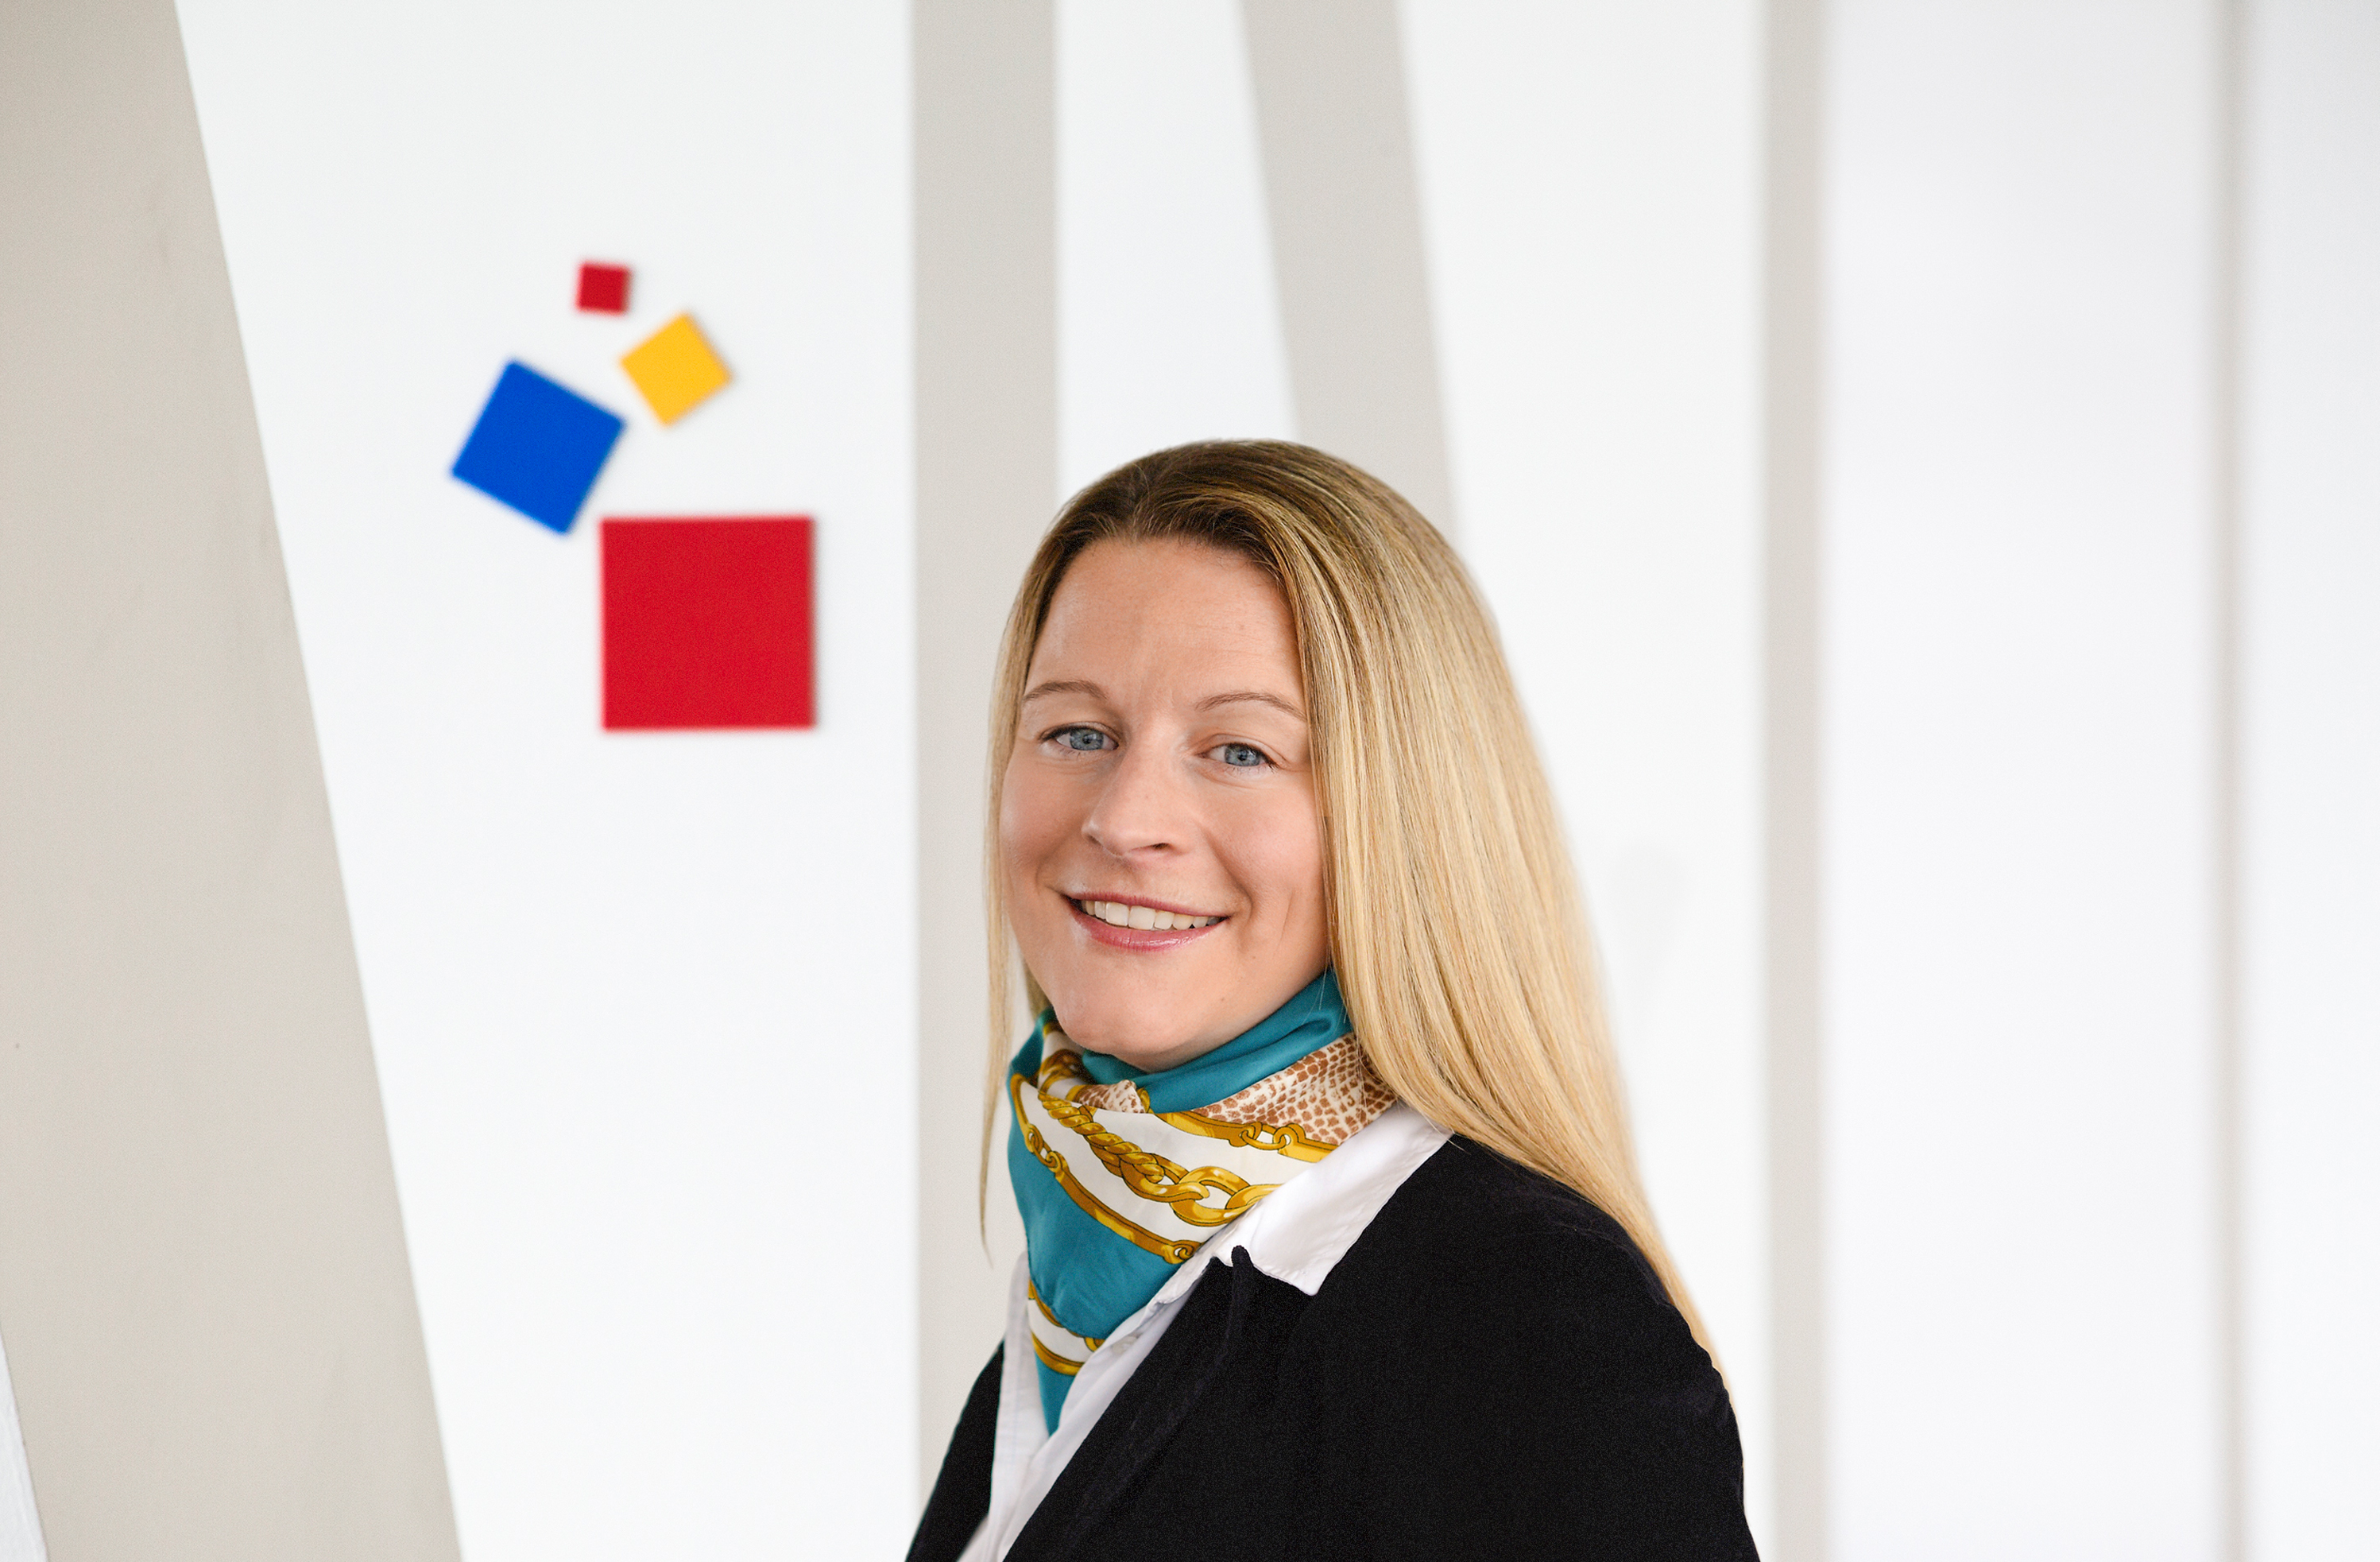 Romina Gowin-Becker, Director Congress Frankfurt